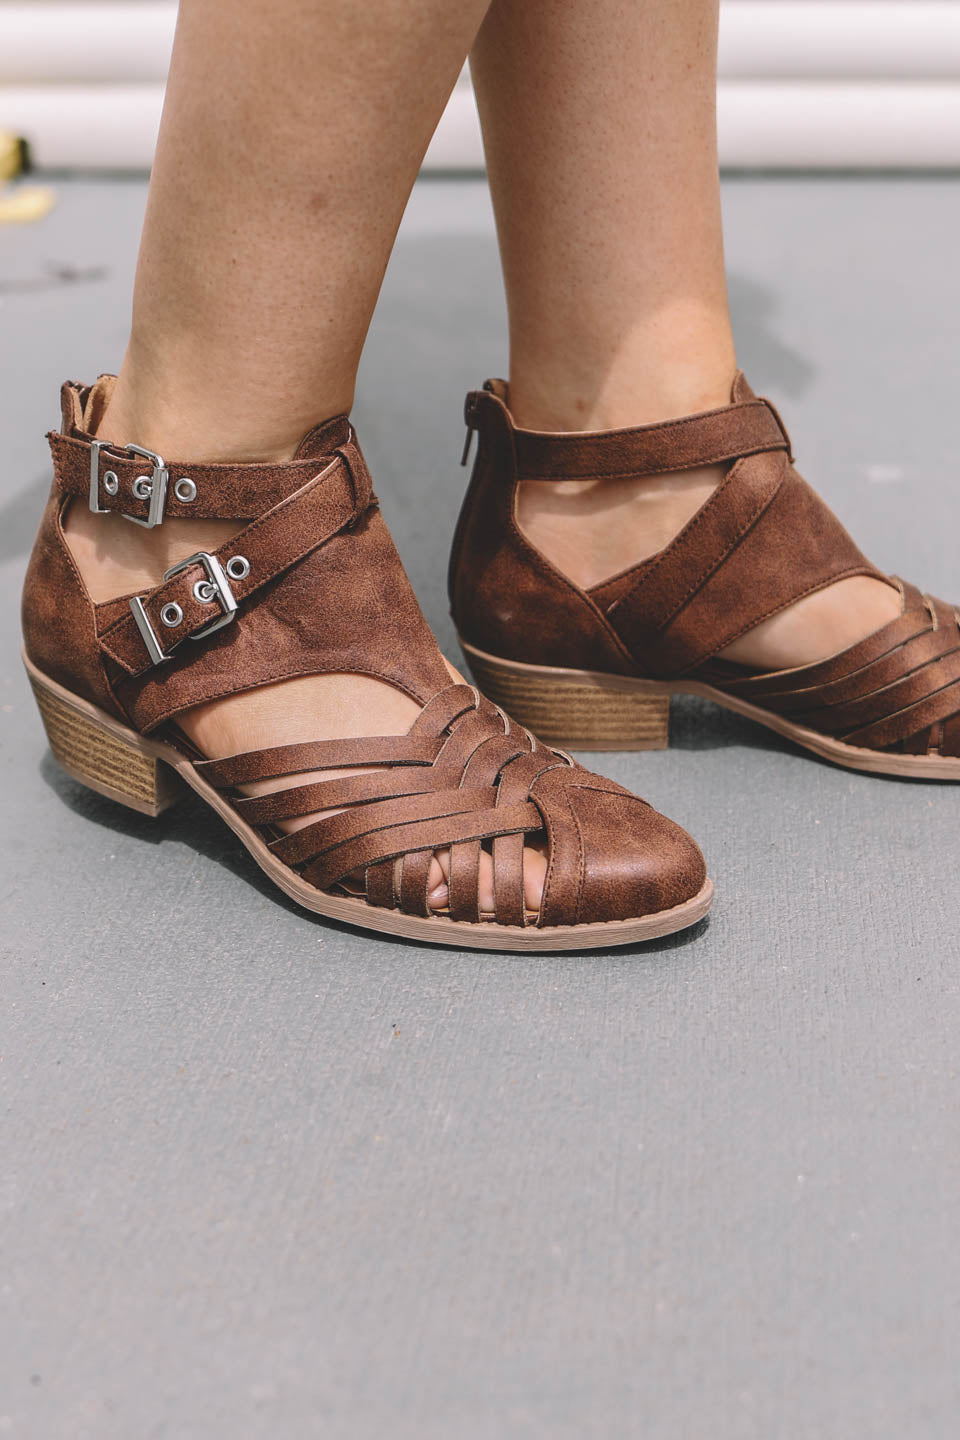 Small Town Cognac Side Buckle Heels - Amazing Lace